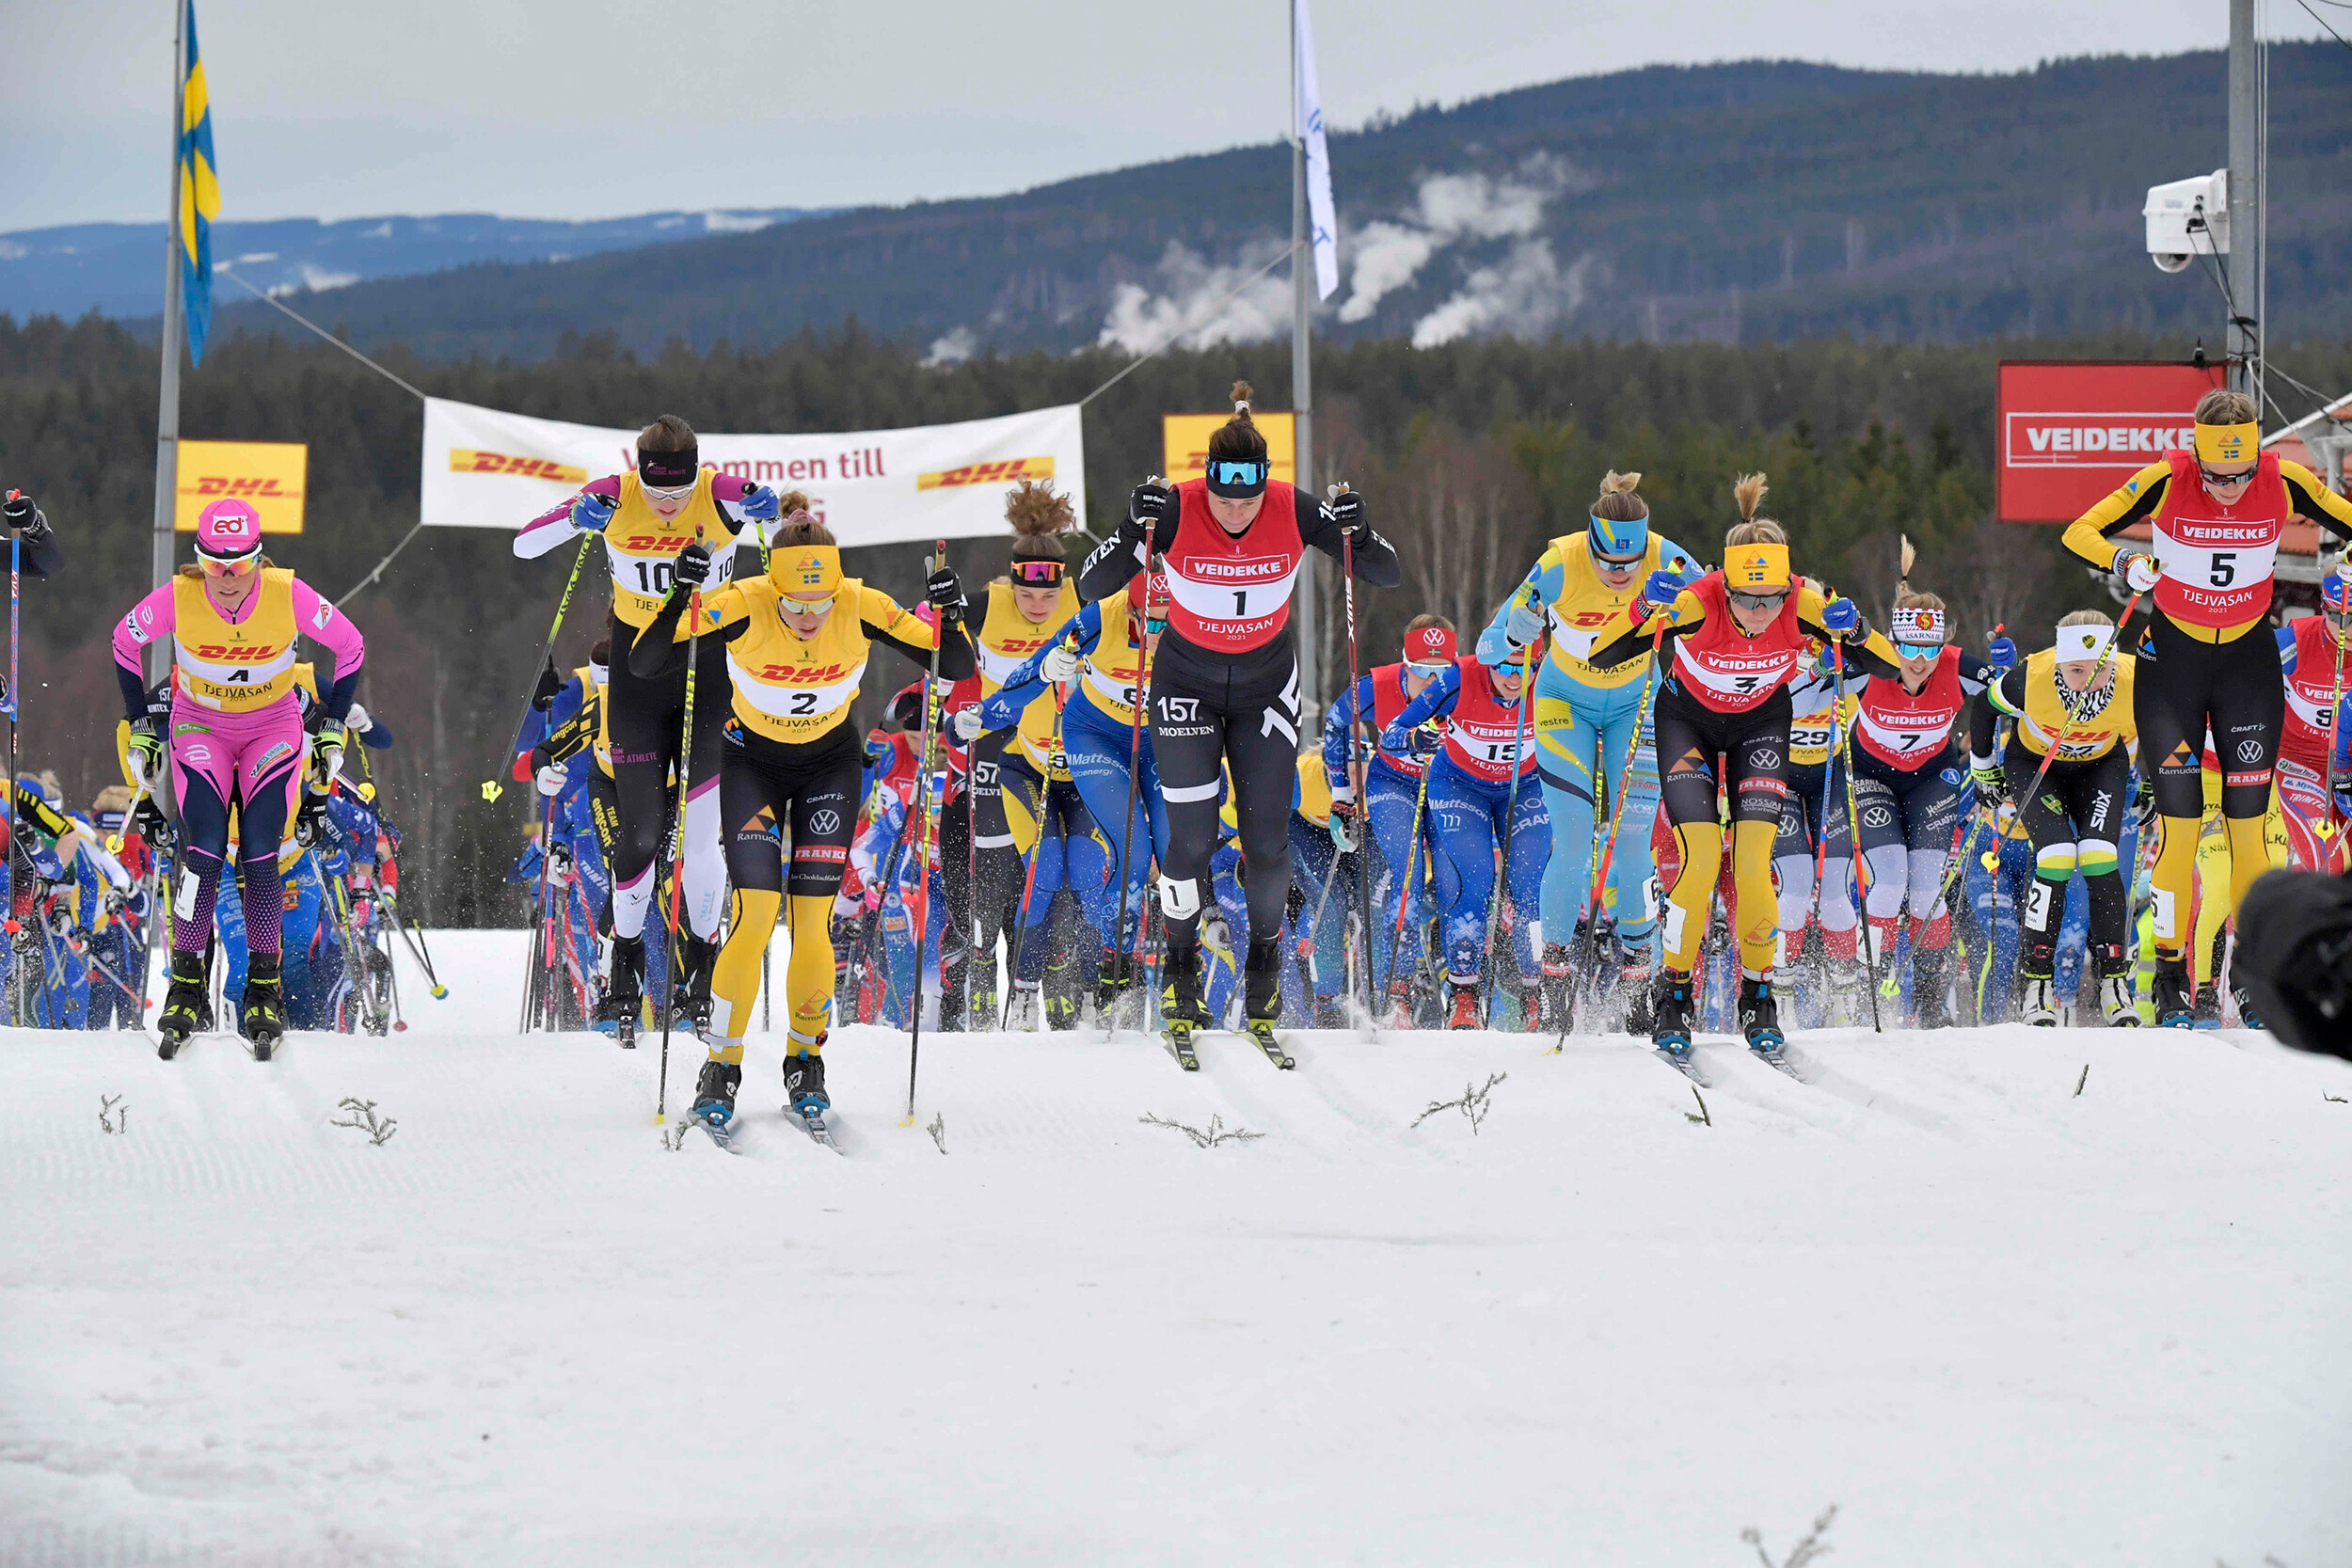 <i>Ulf Palm/Vasaloppet/Xinhua/Sipa USA</i><br/>Skiers might be at lower risk for anxiety